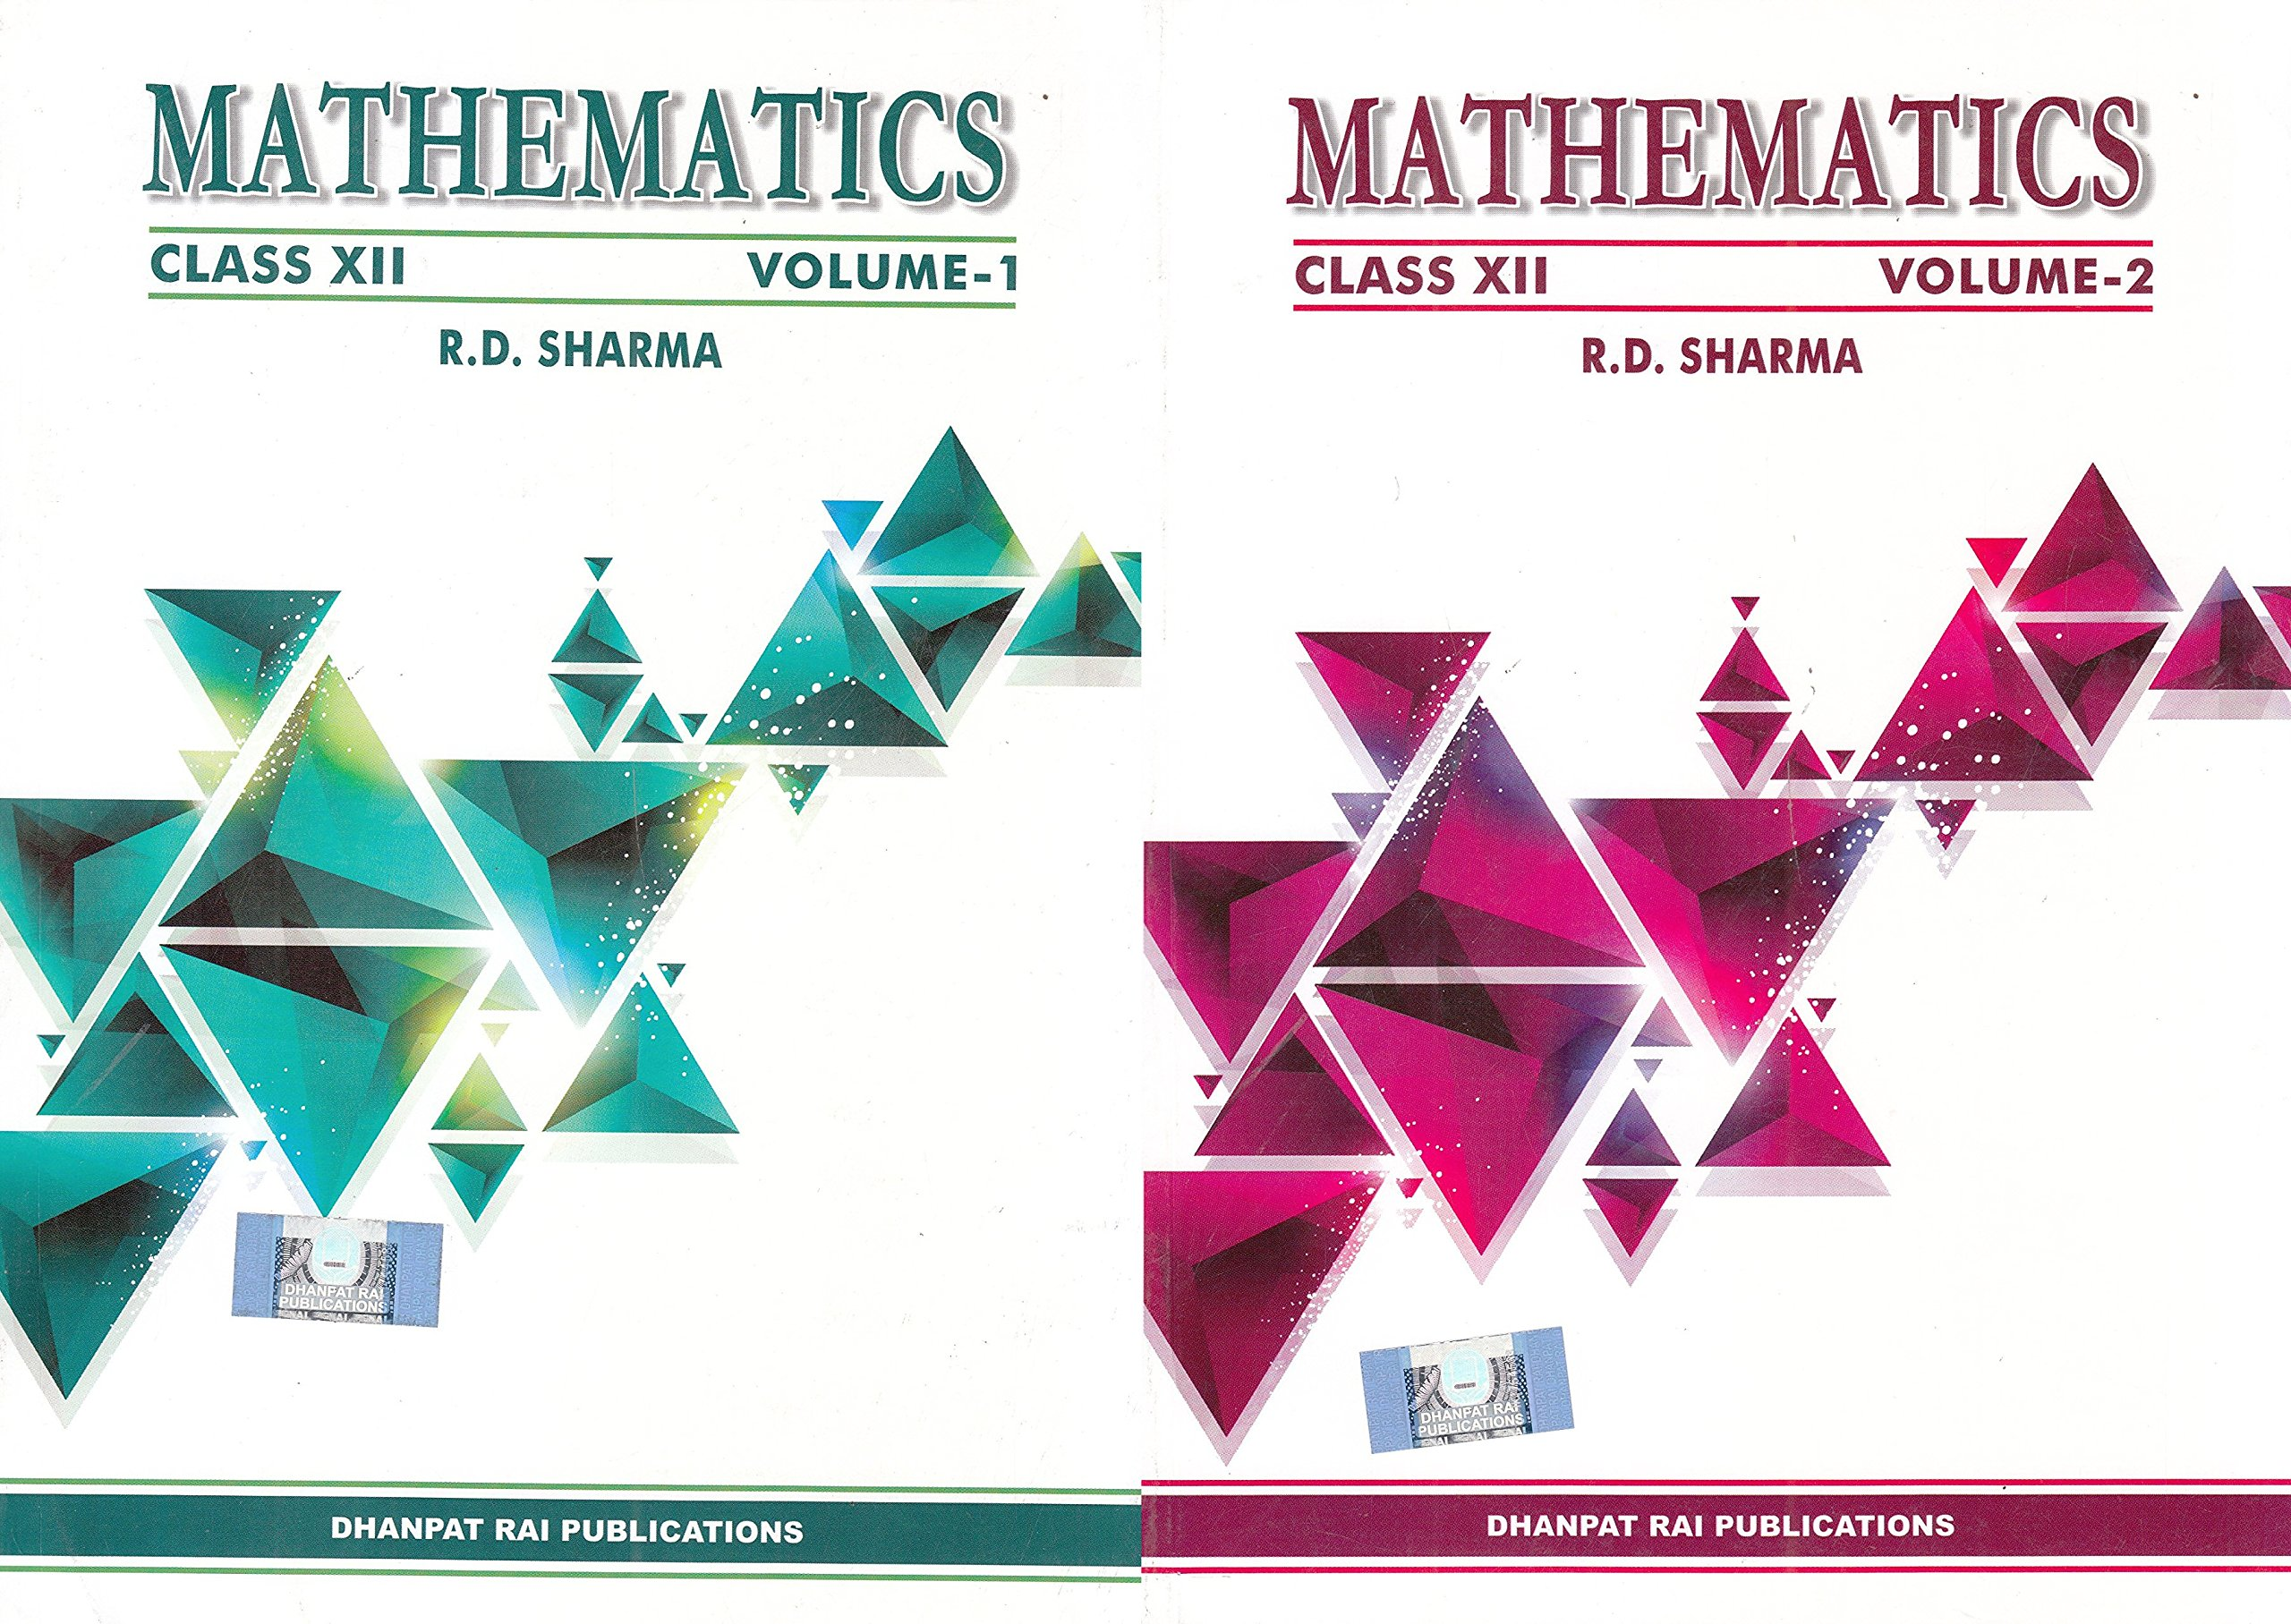 Buy mathematics vol 1 2 class 12 old edition book online at buy mathematics vol 1 2 class 12 old edition book online at low prices in india mathematics vol 1 2 class 12 old edition reviews ratings fandeluxe Gallery